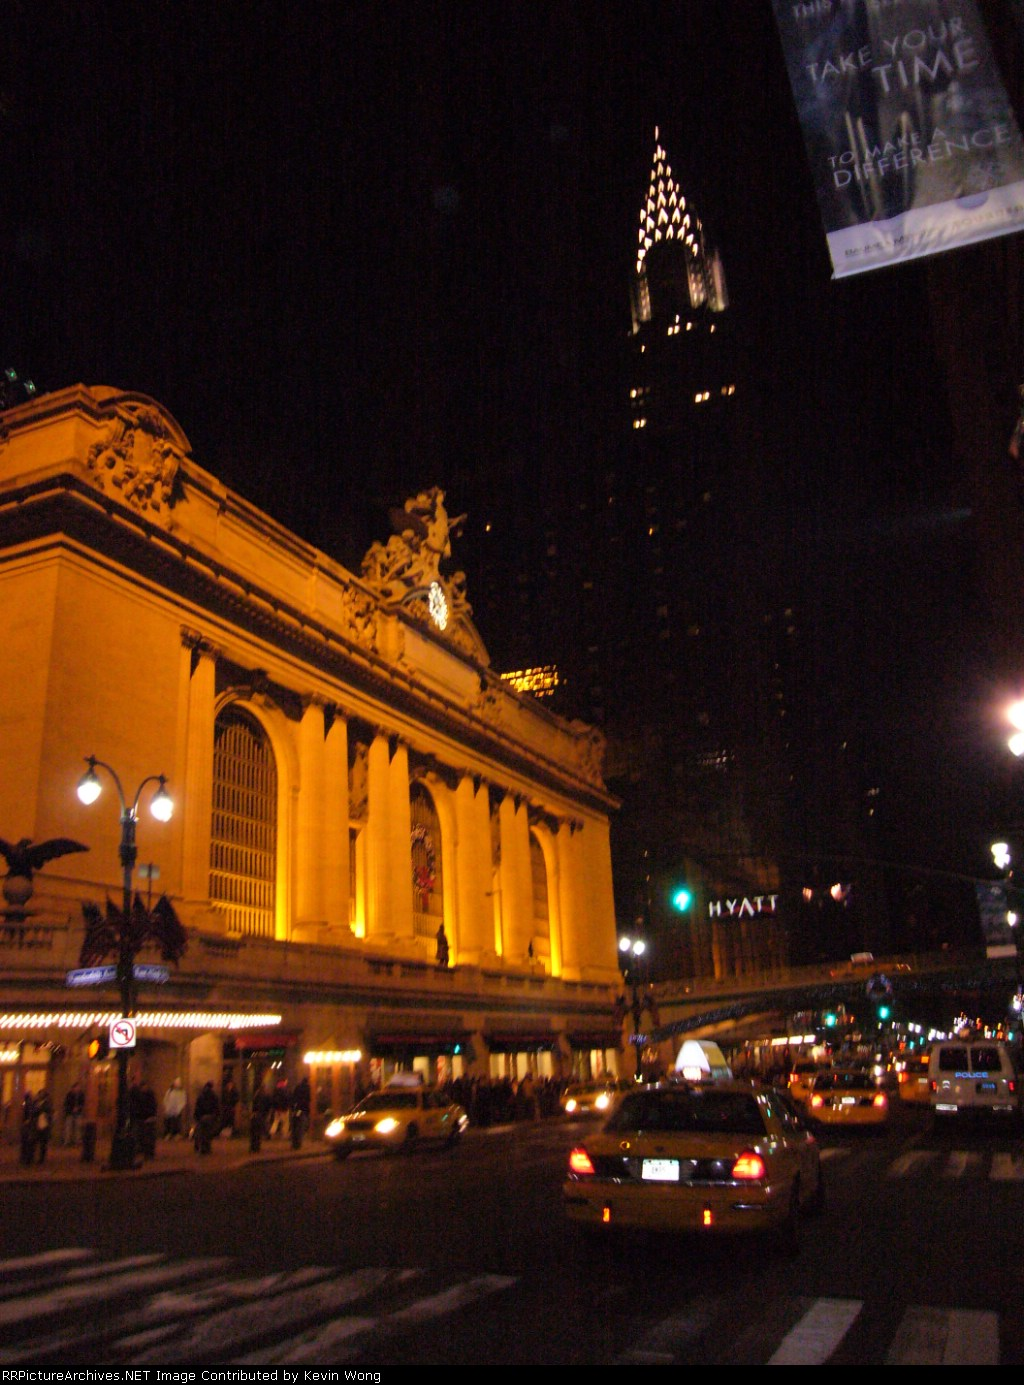 Two New York icons-Grand Central and the Chrysler Building